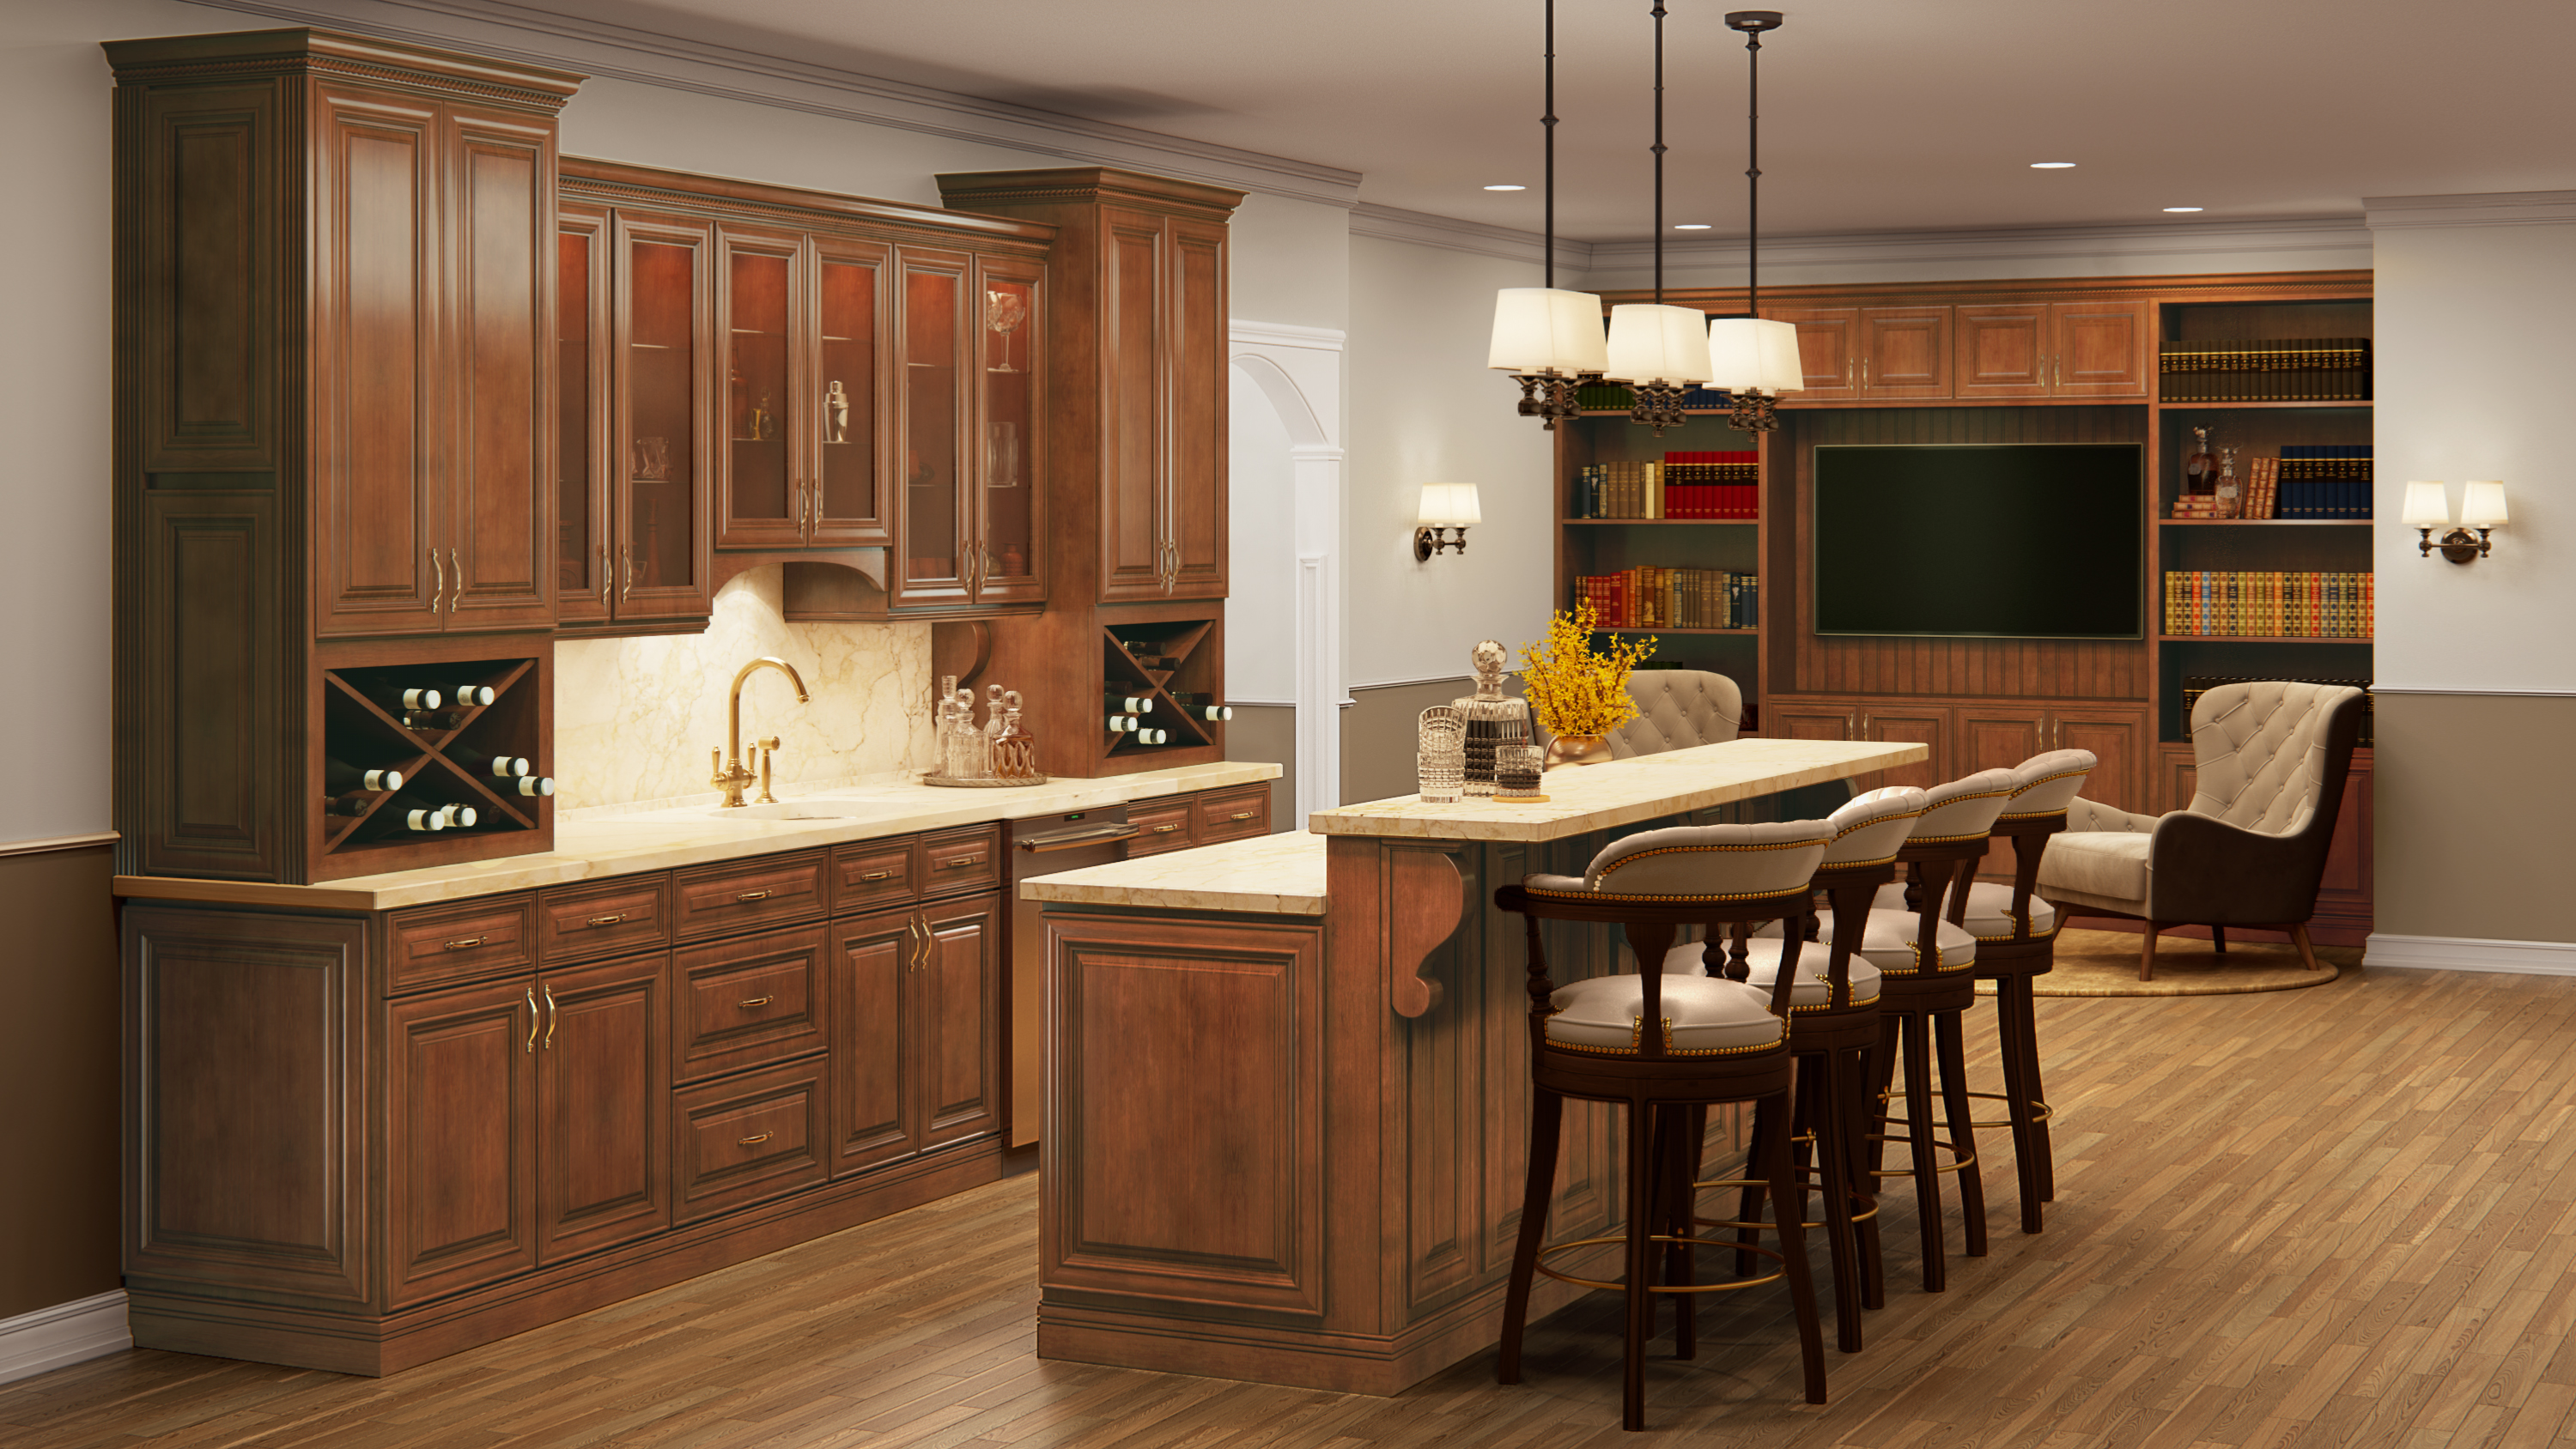 Us Cabinet Depot Casselberry Saddle Waverly Cabinets